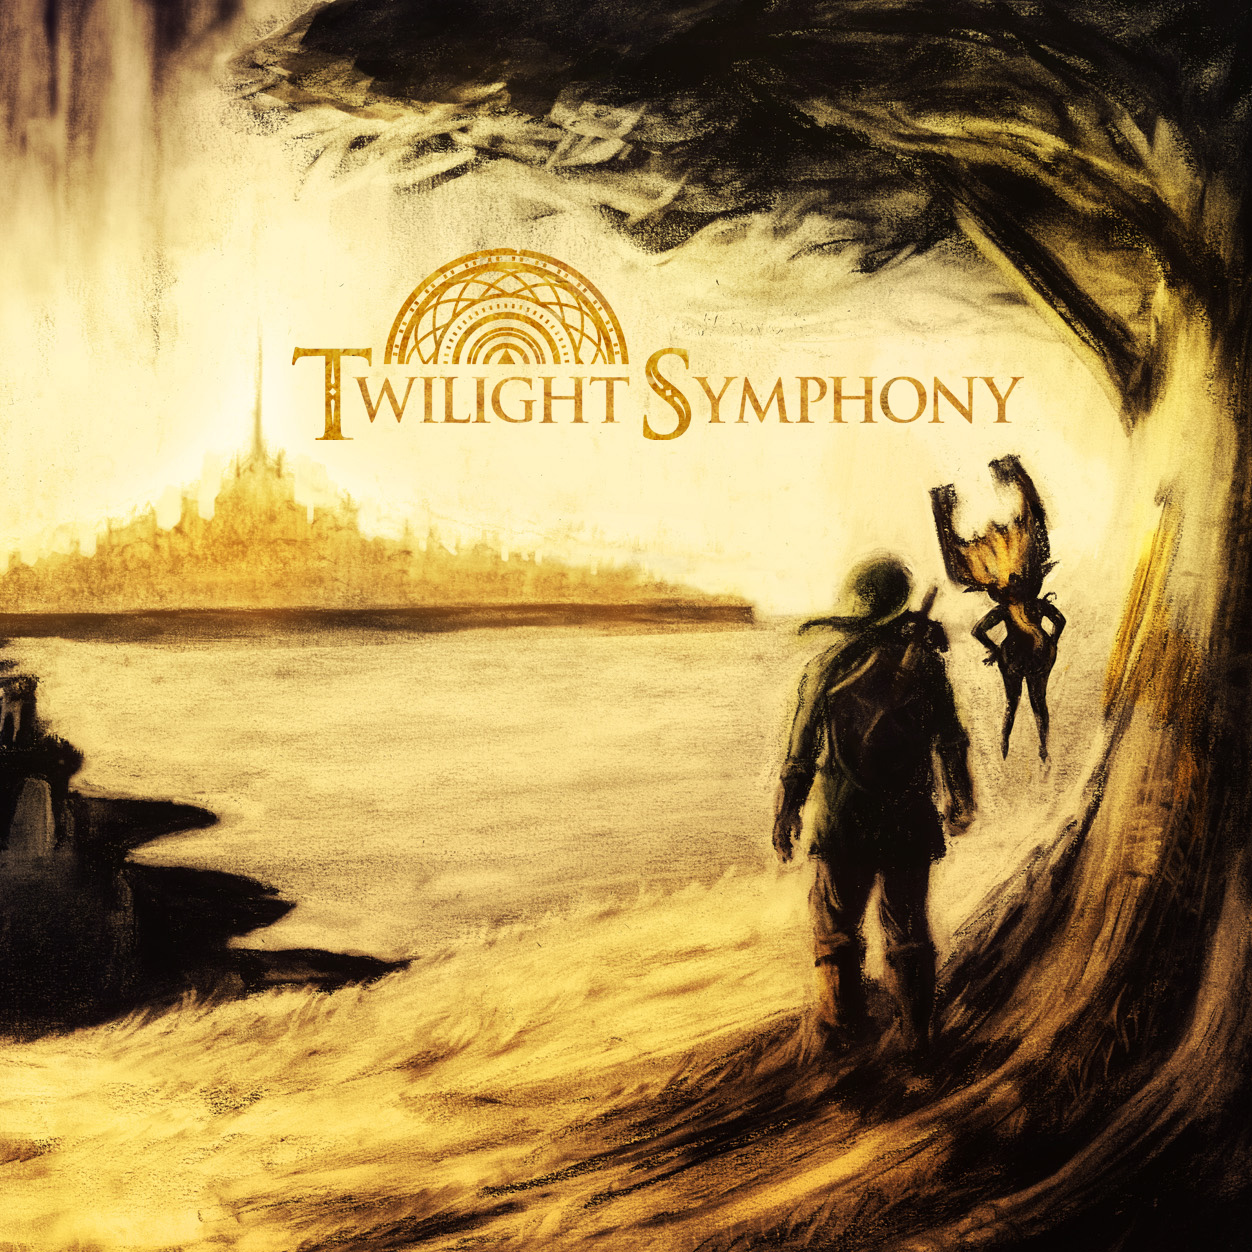 The Legend of Zelda: Twilight Symphony